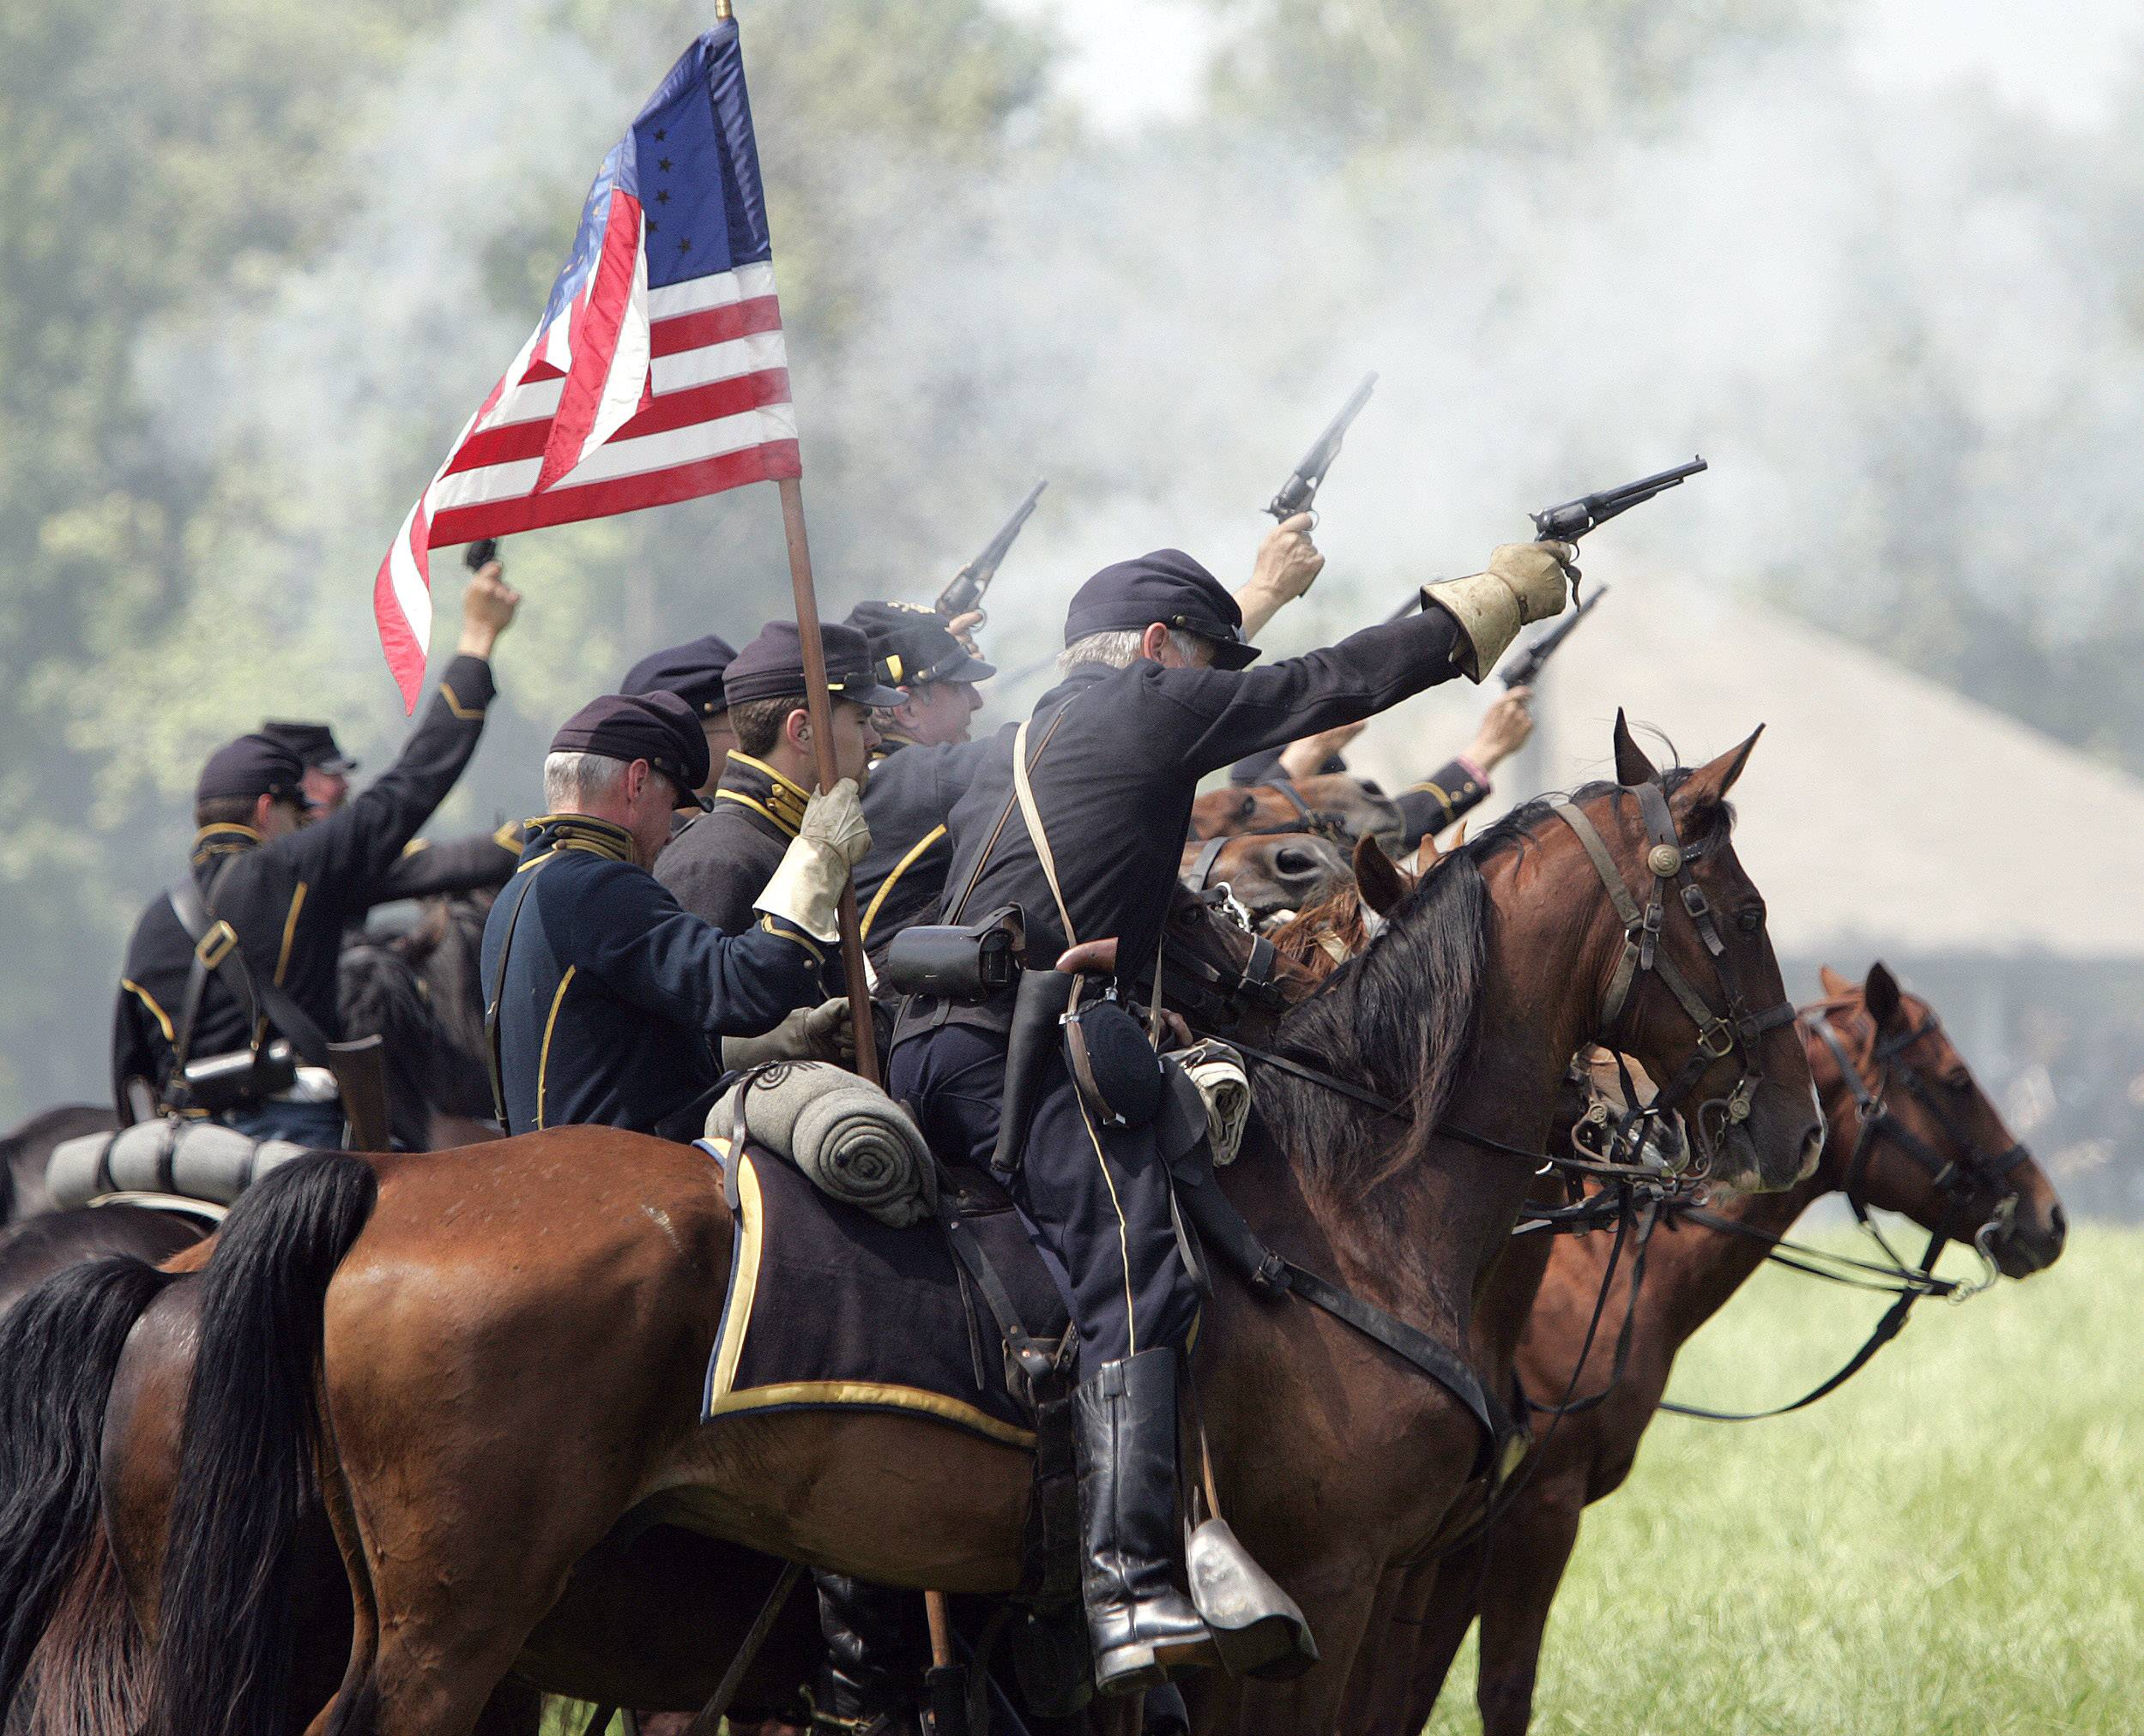 Conflict between the North and the South in the Civil War